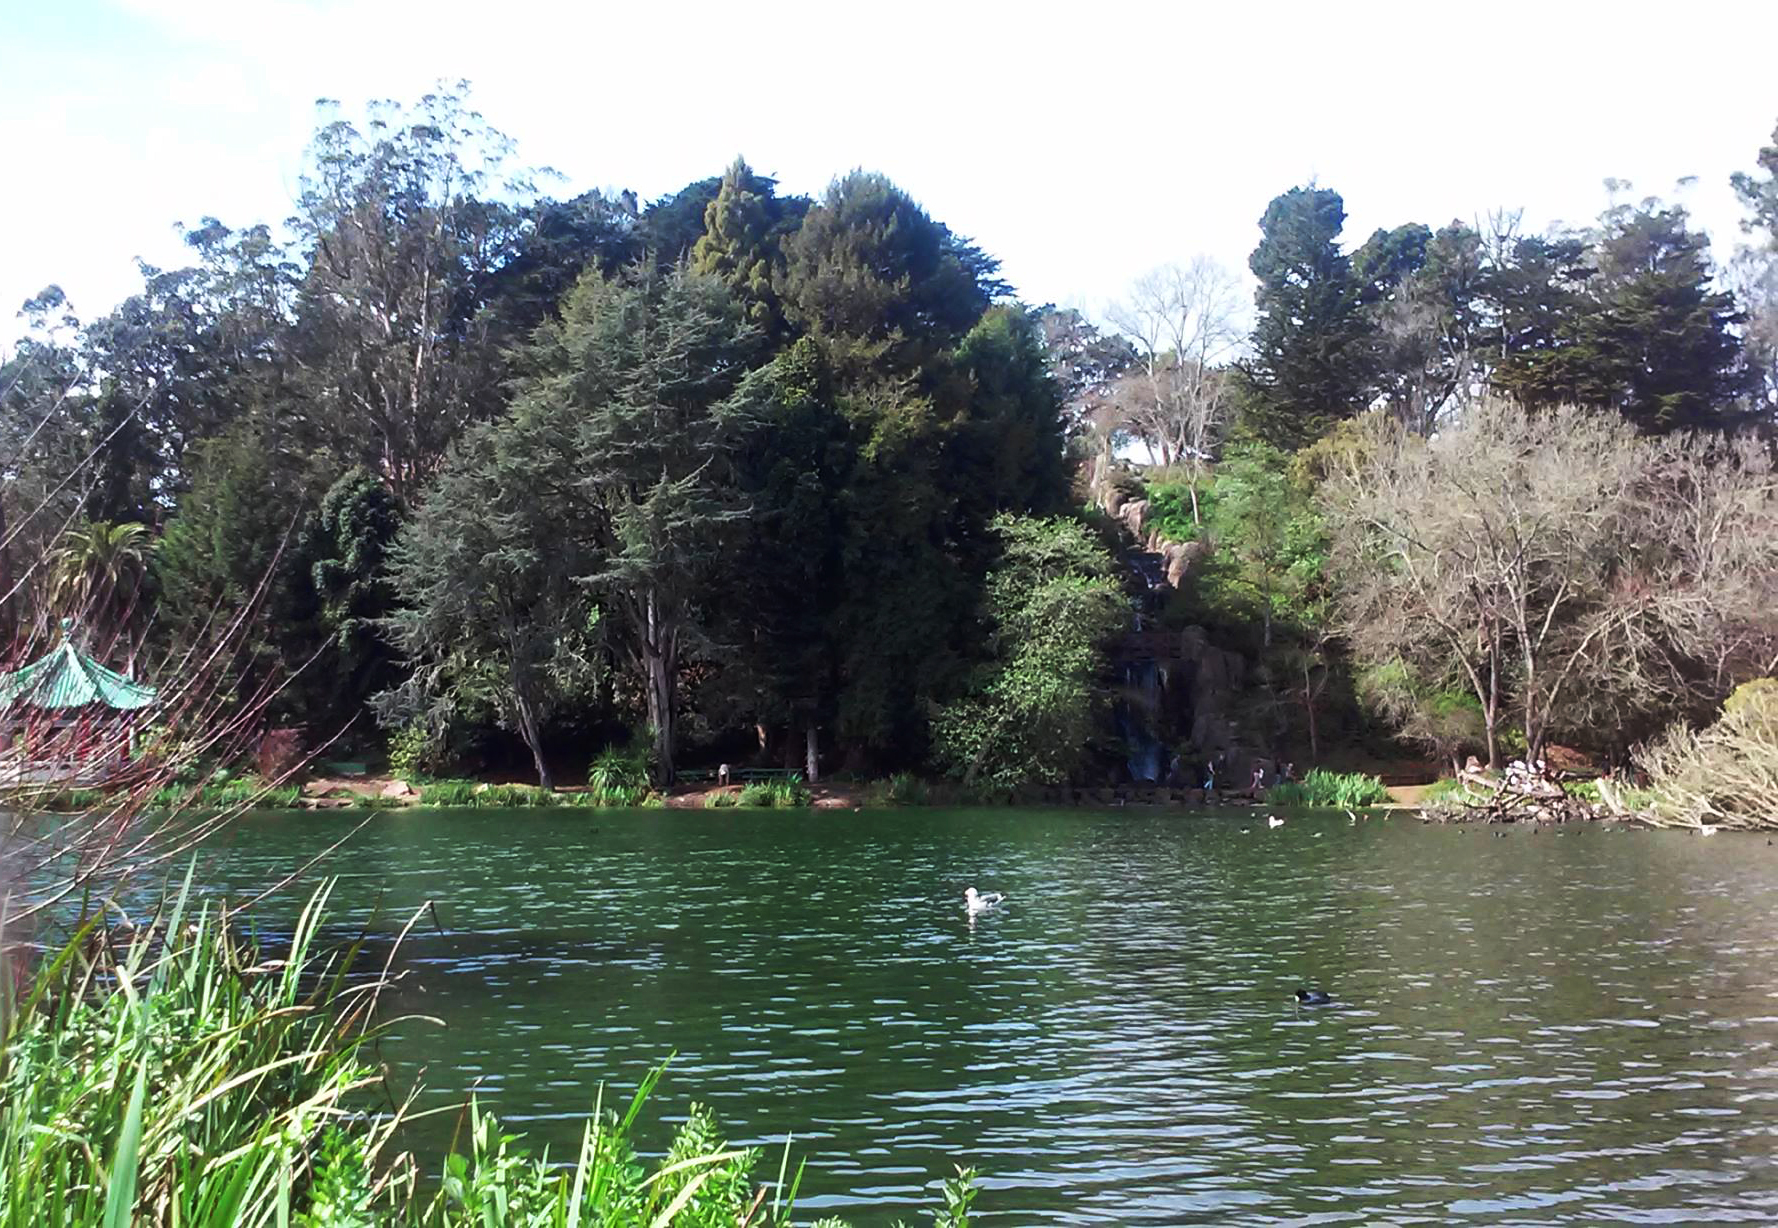 SAN FRANCISCO—The San Francisco Police Department announced that a body was discovered floating in a lake of Golden Gate Park on Wednesday, March 3.